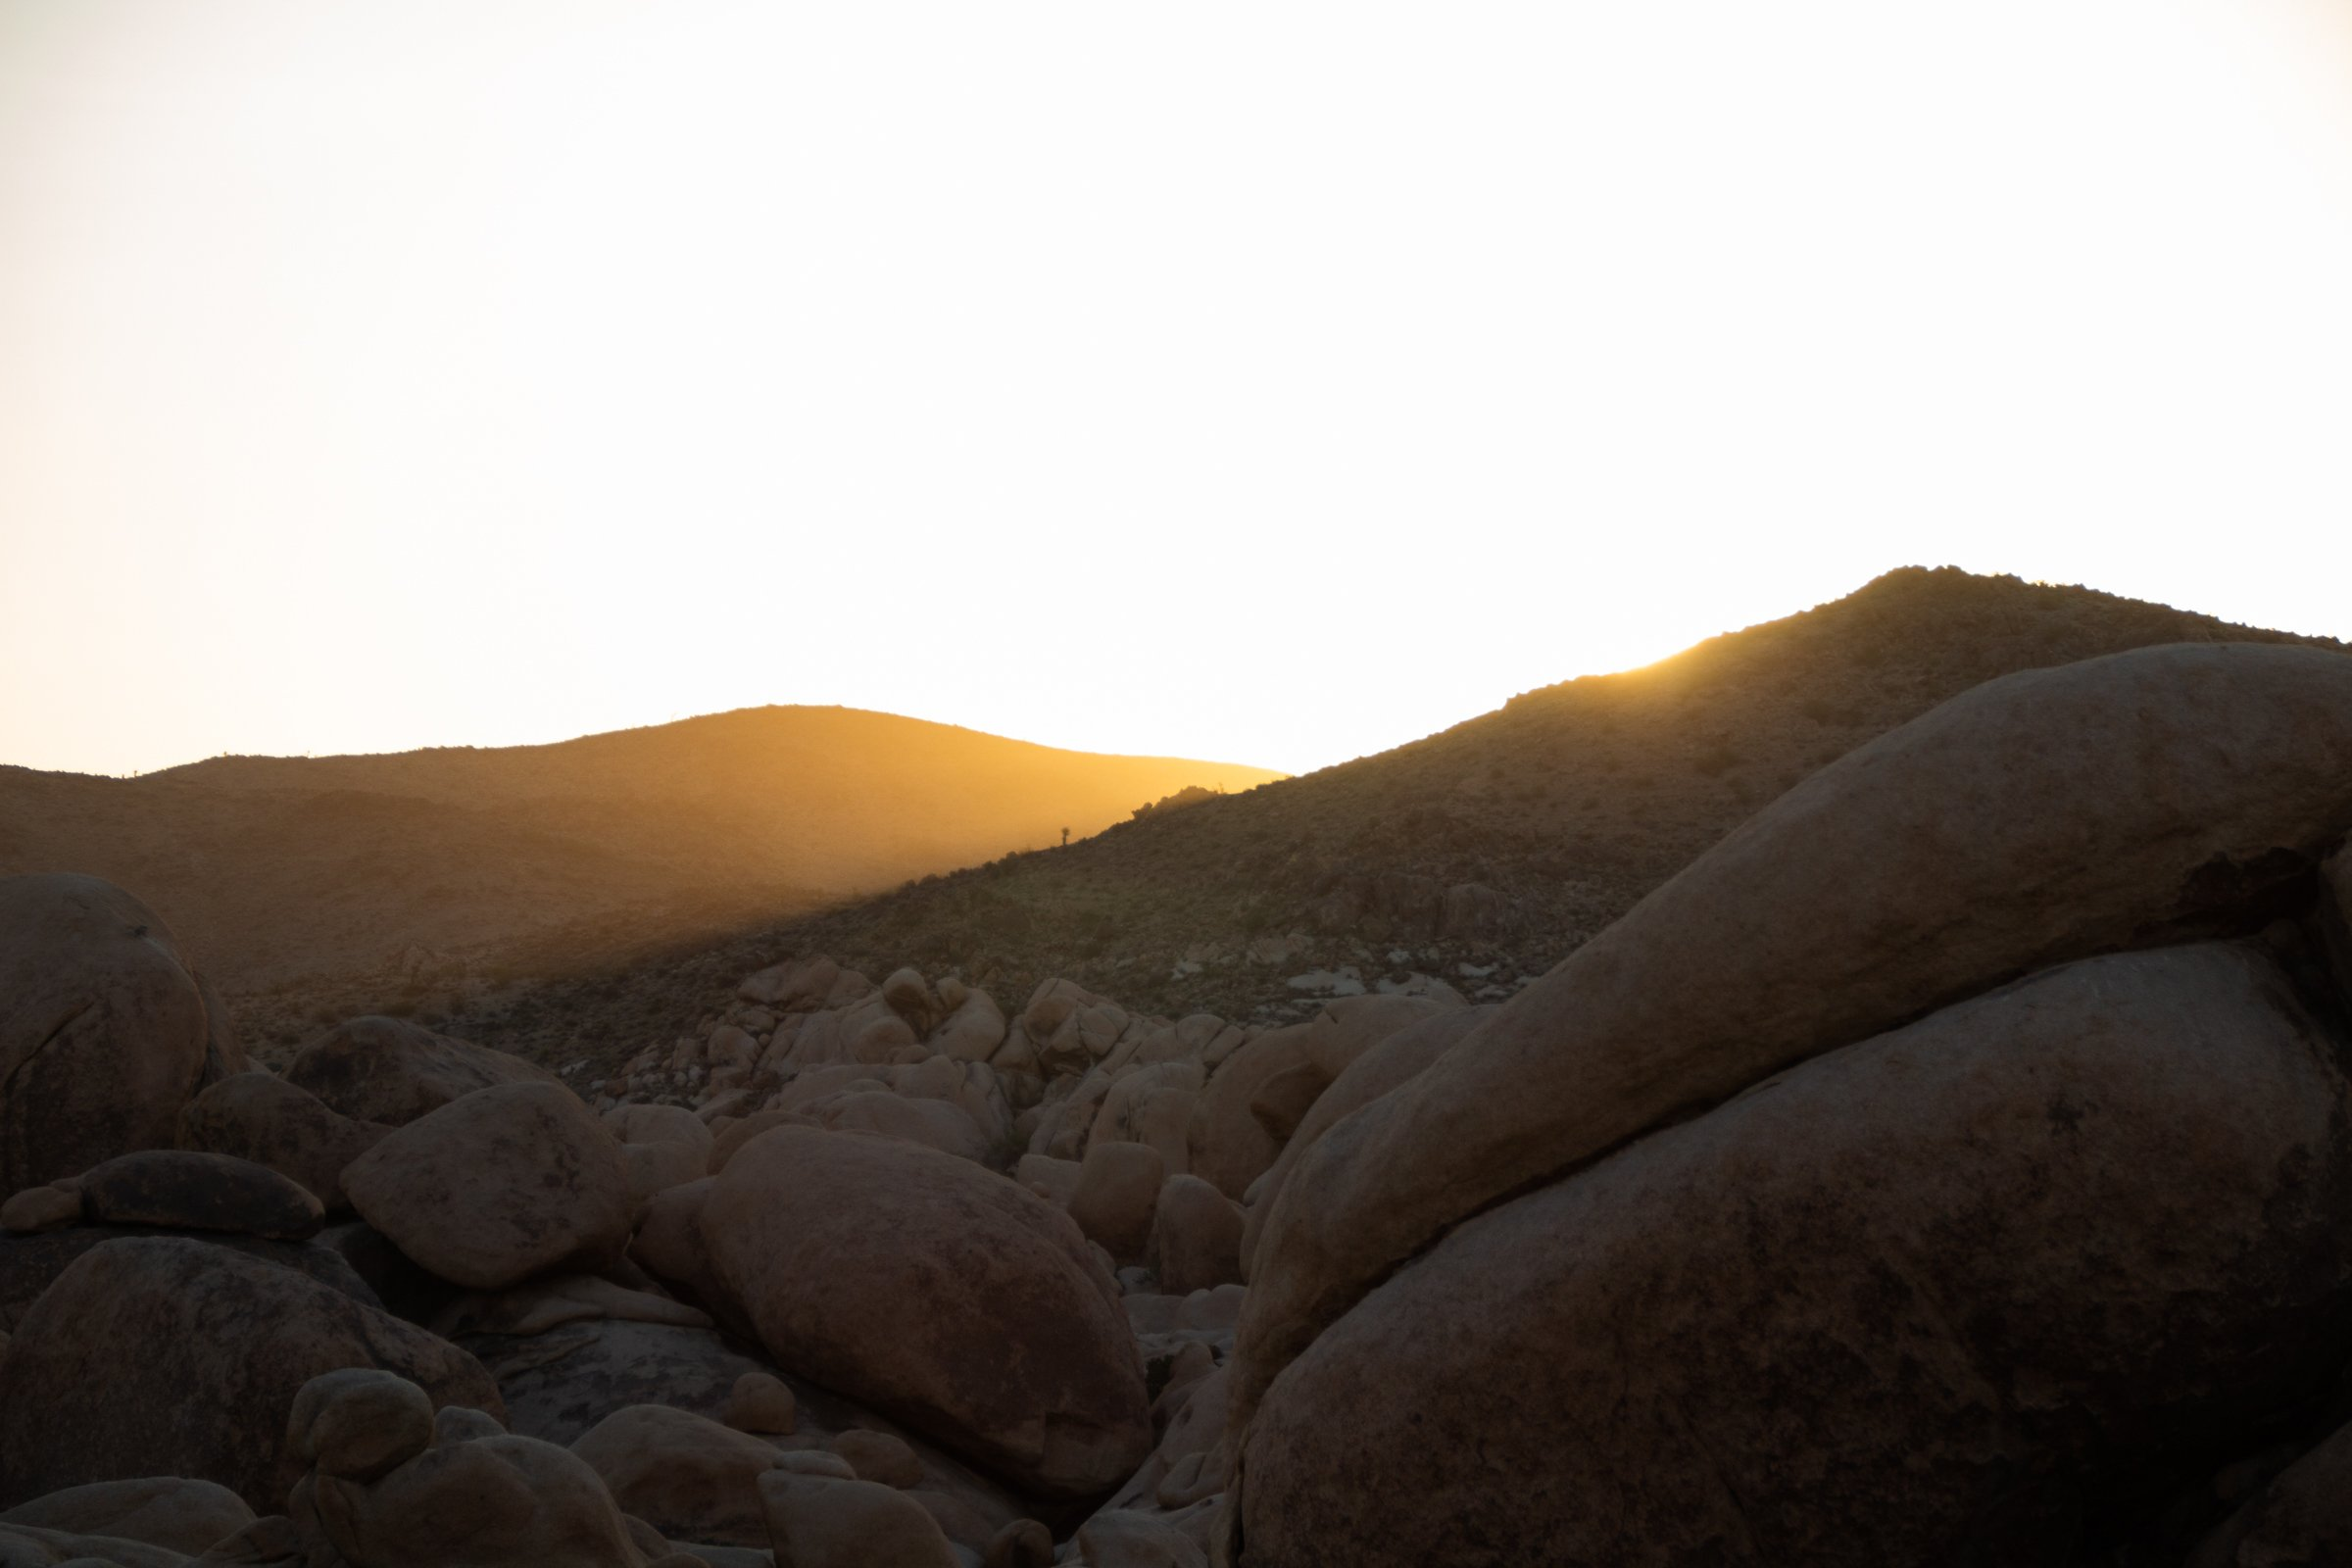 Sunset Behind Hills Near Rocks And Boulders